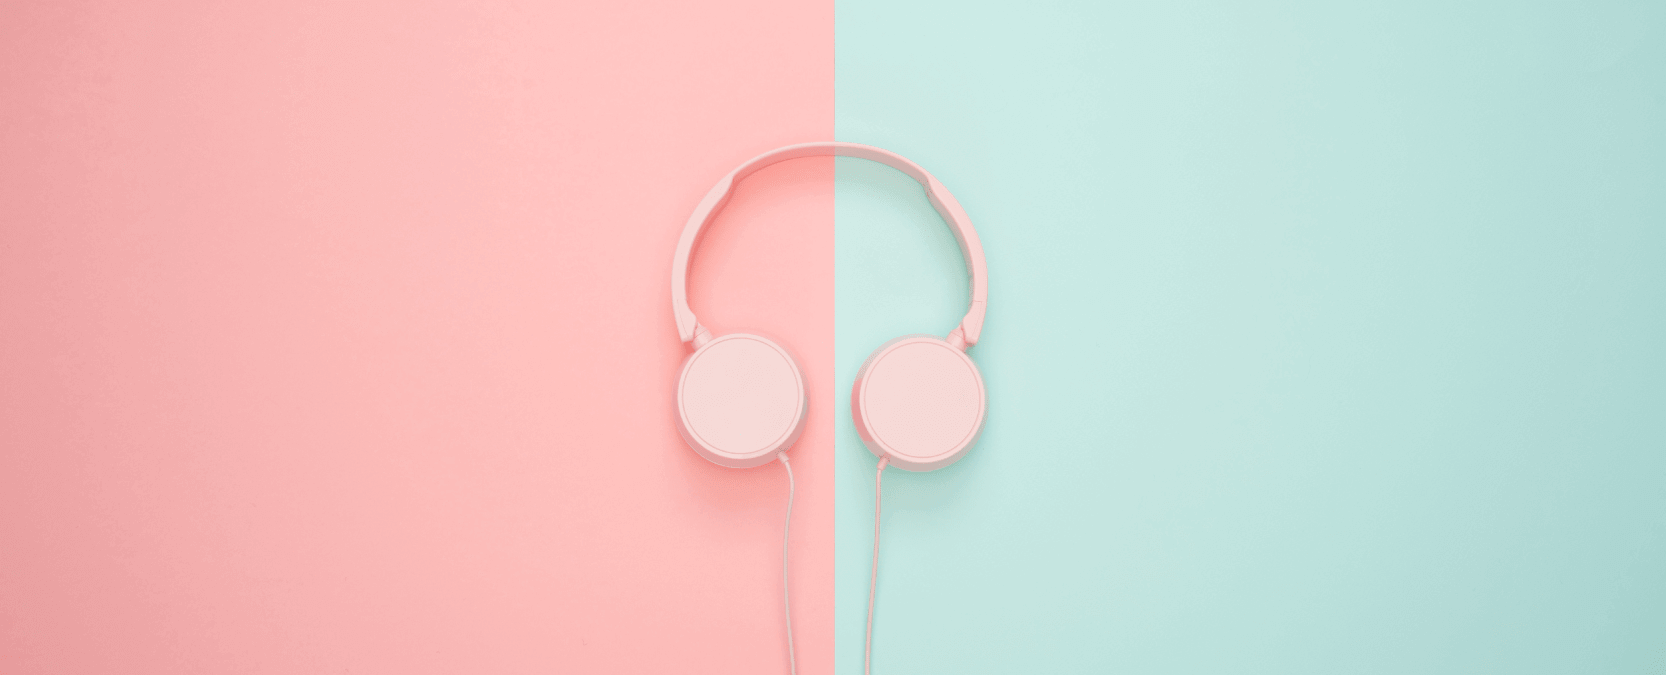 32 Marketing & Social Media Podcasts Any Professional Should Listen To